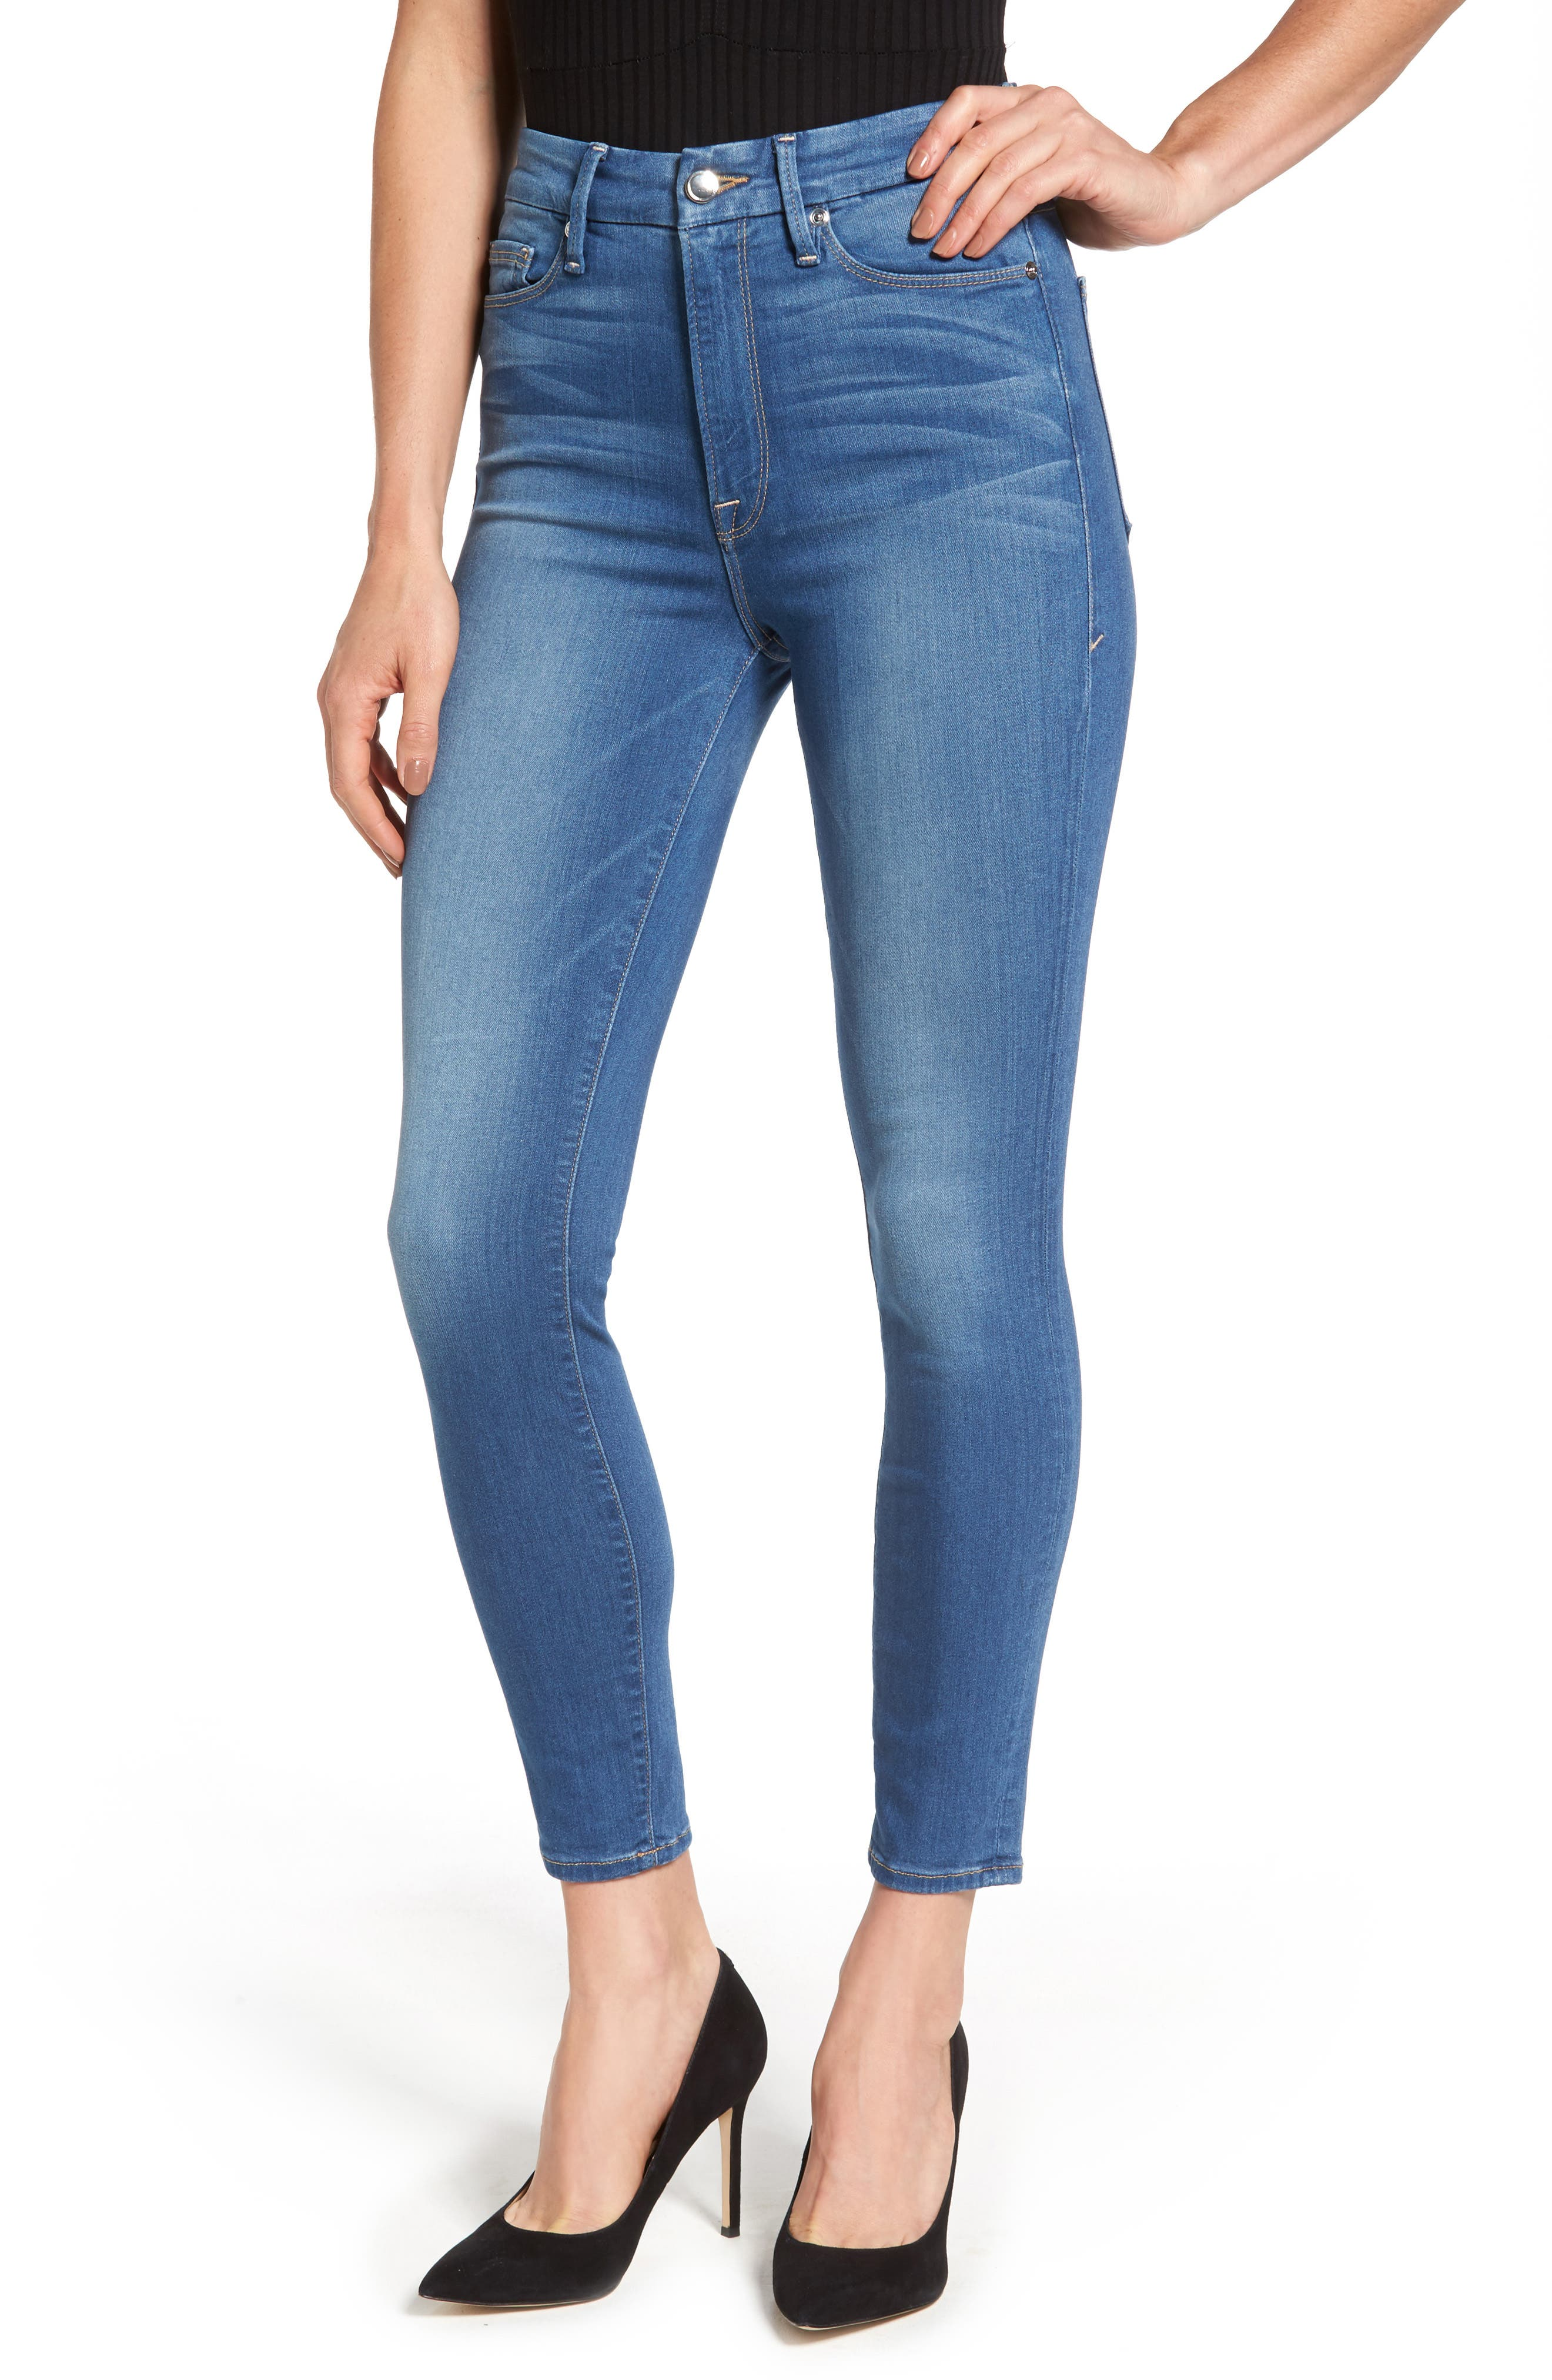 Main Image - Good American Good Waist High Waist Crop Skinny Jeans (Blue 056) (Extended Sizes)